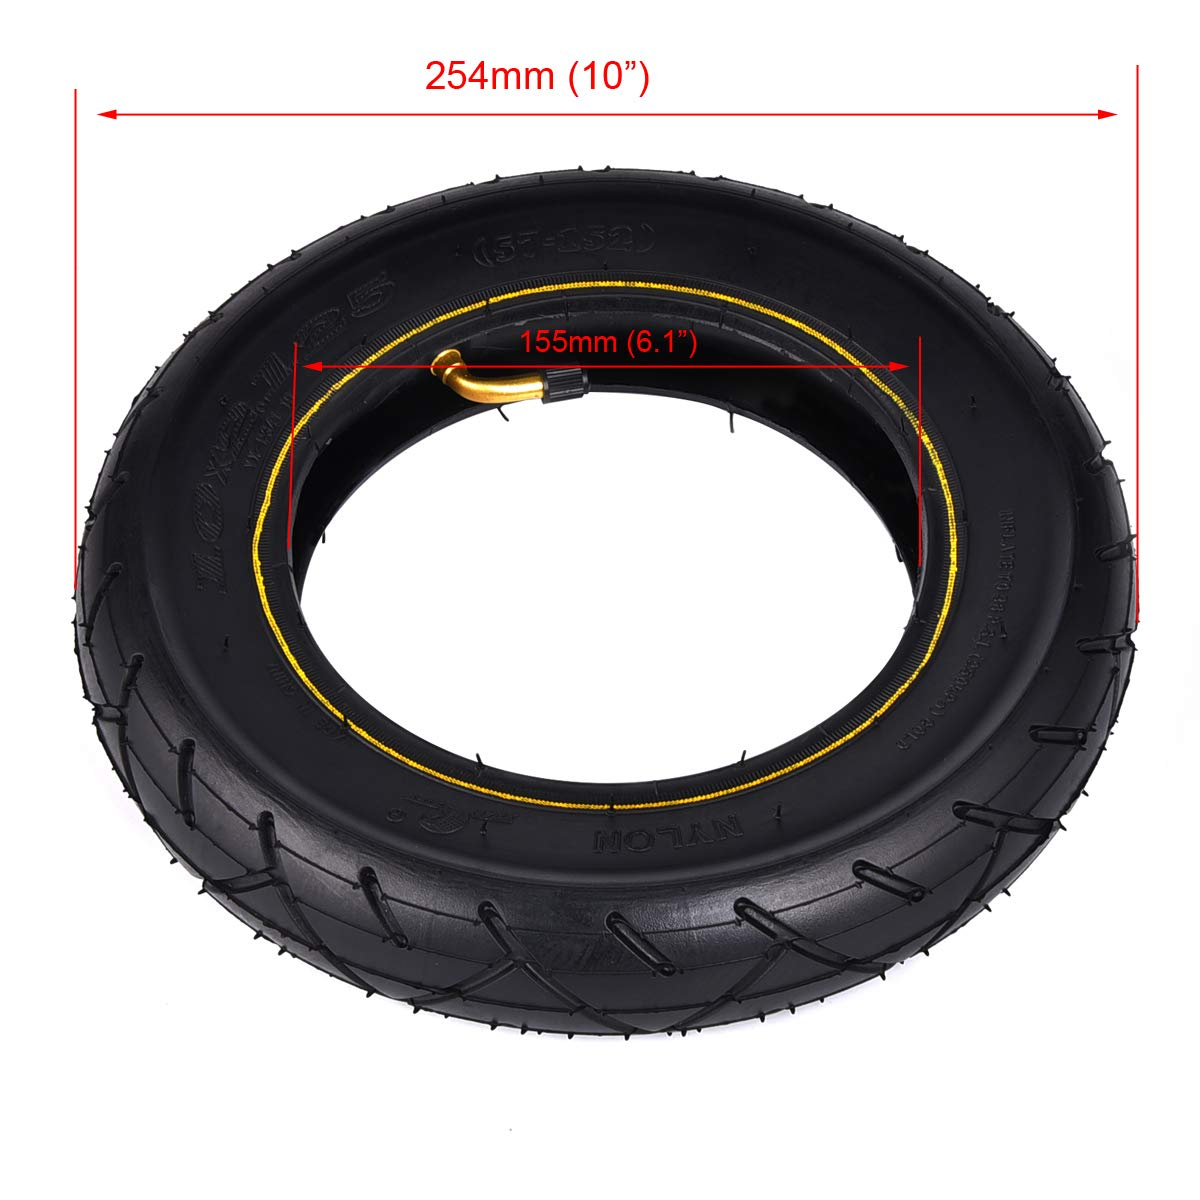 Wingsmoto 10 10 x 2.125 Tyre Tire /& Tube for Smart Self Balancing Scooter 10 Inch Unicycle